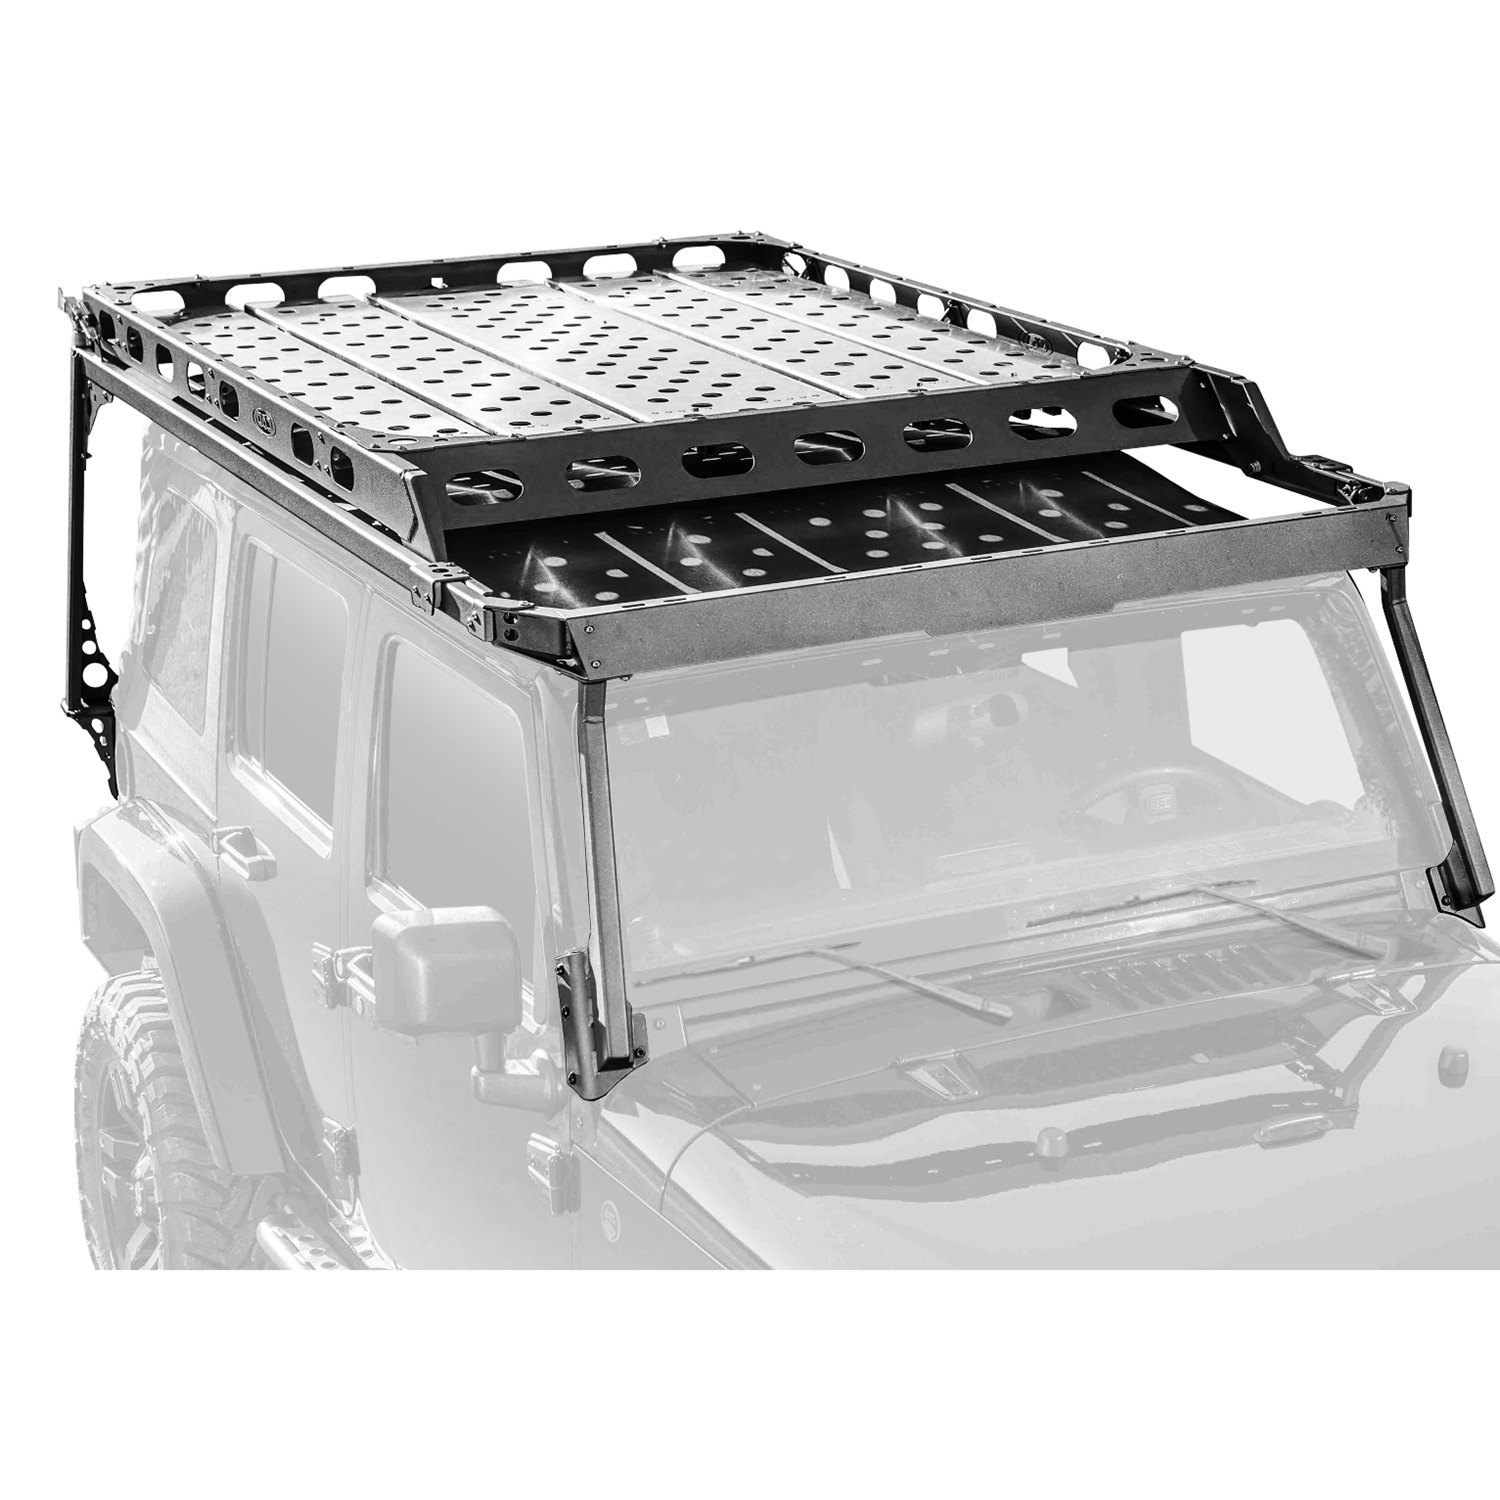 LoD Offroad®   Easy Access Sliding Roof Rack